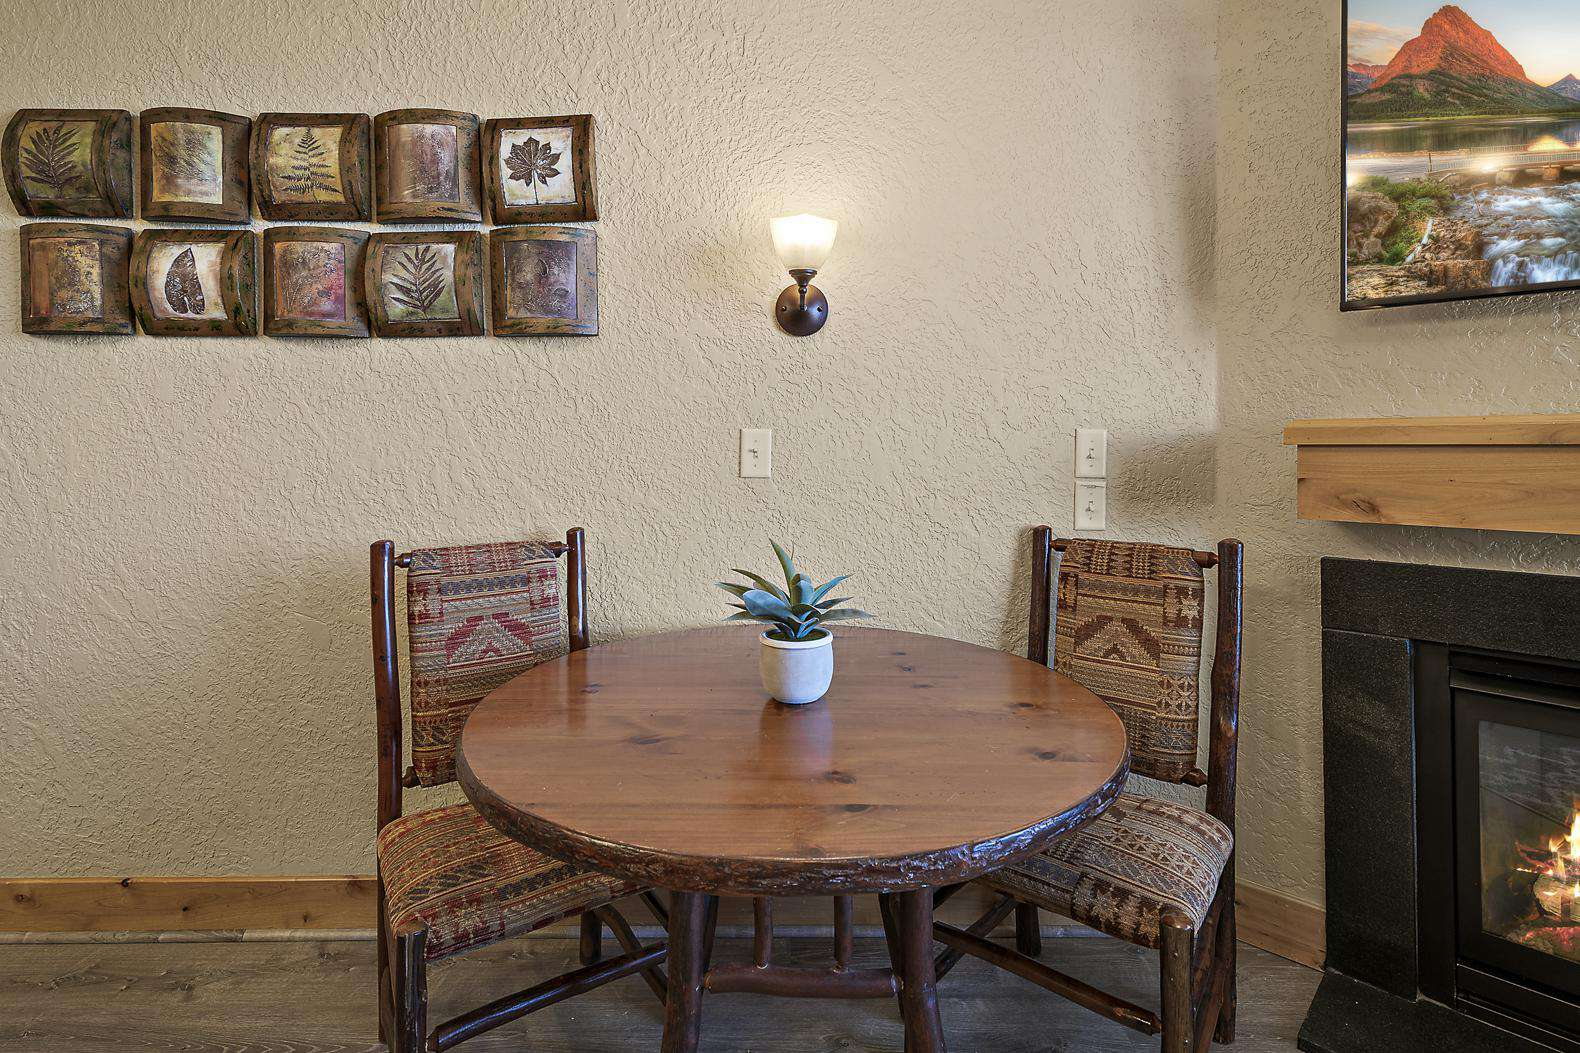 Living room dining table for 2